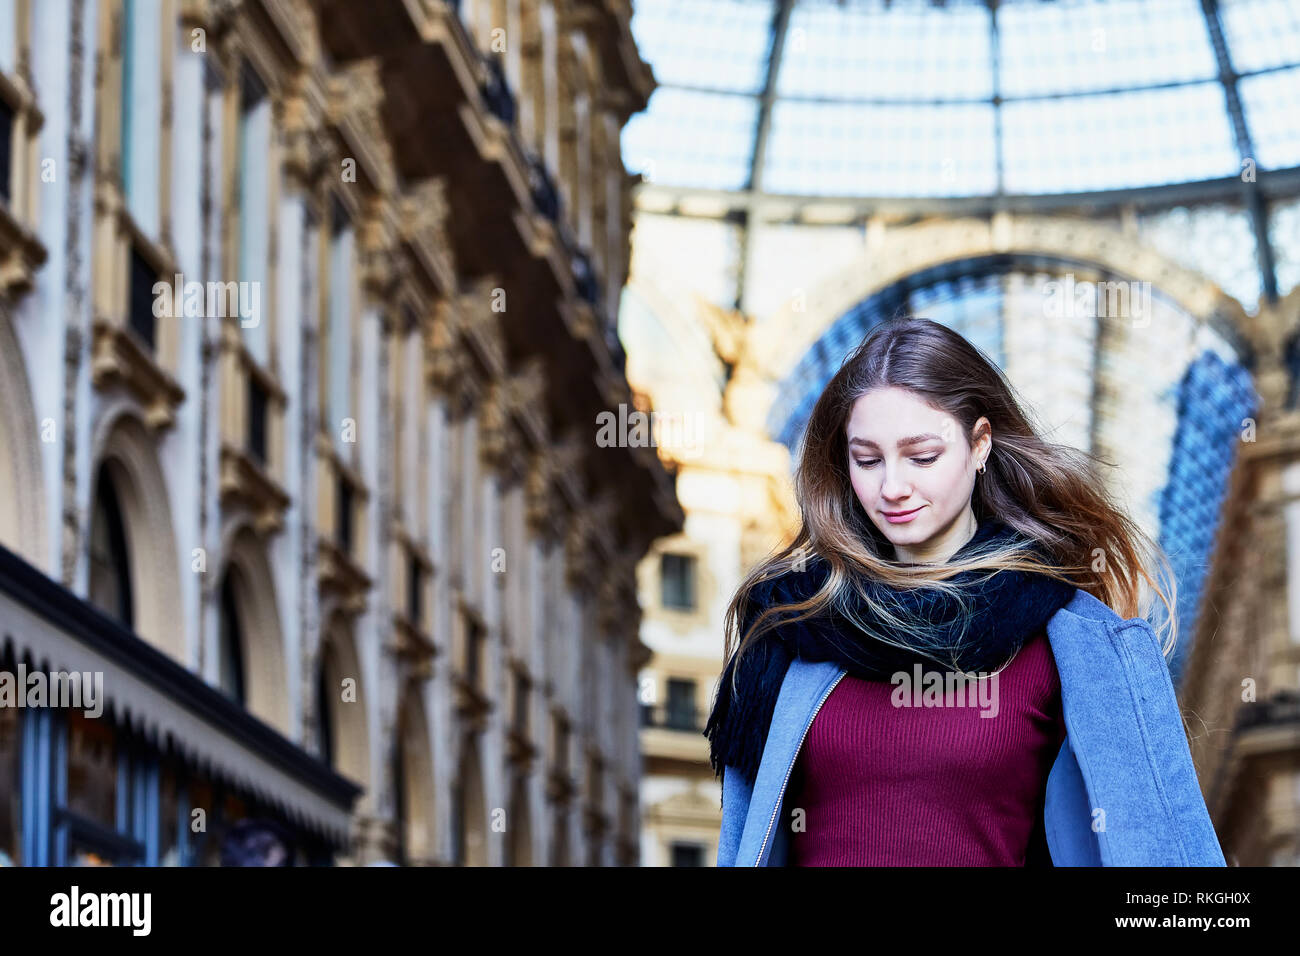 Girl daydreaming while walking inside of Galleria Vittorio Emanuele II in Milan Italy Stock Photo